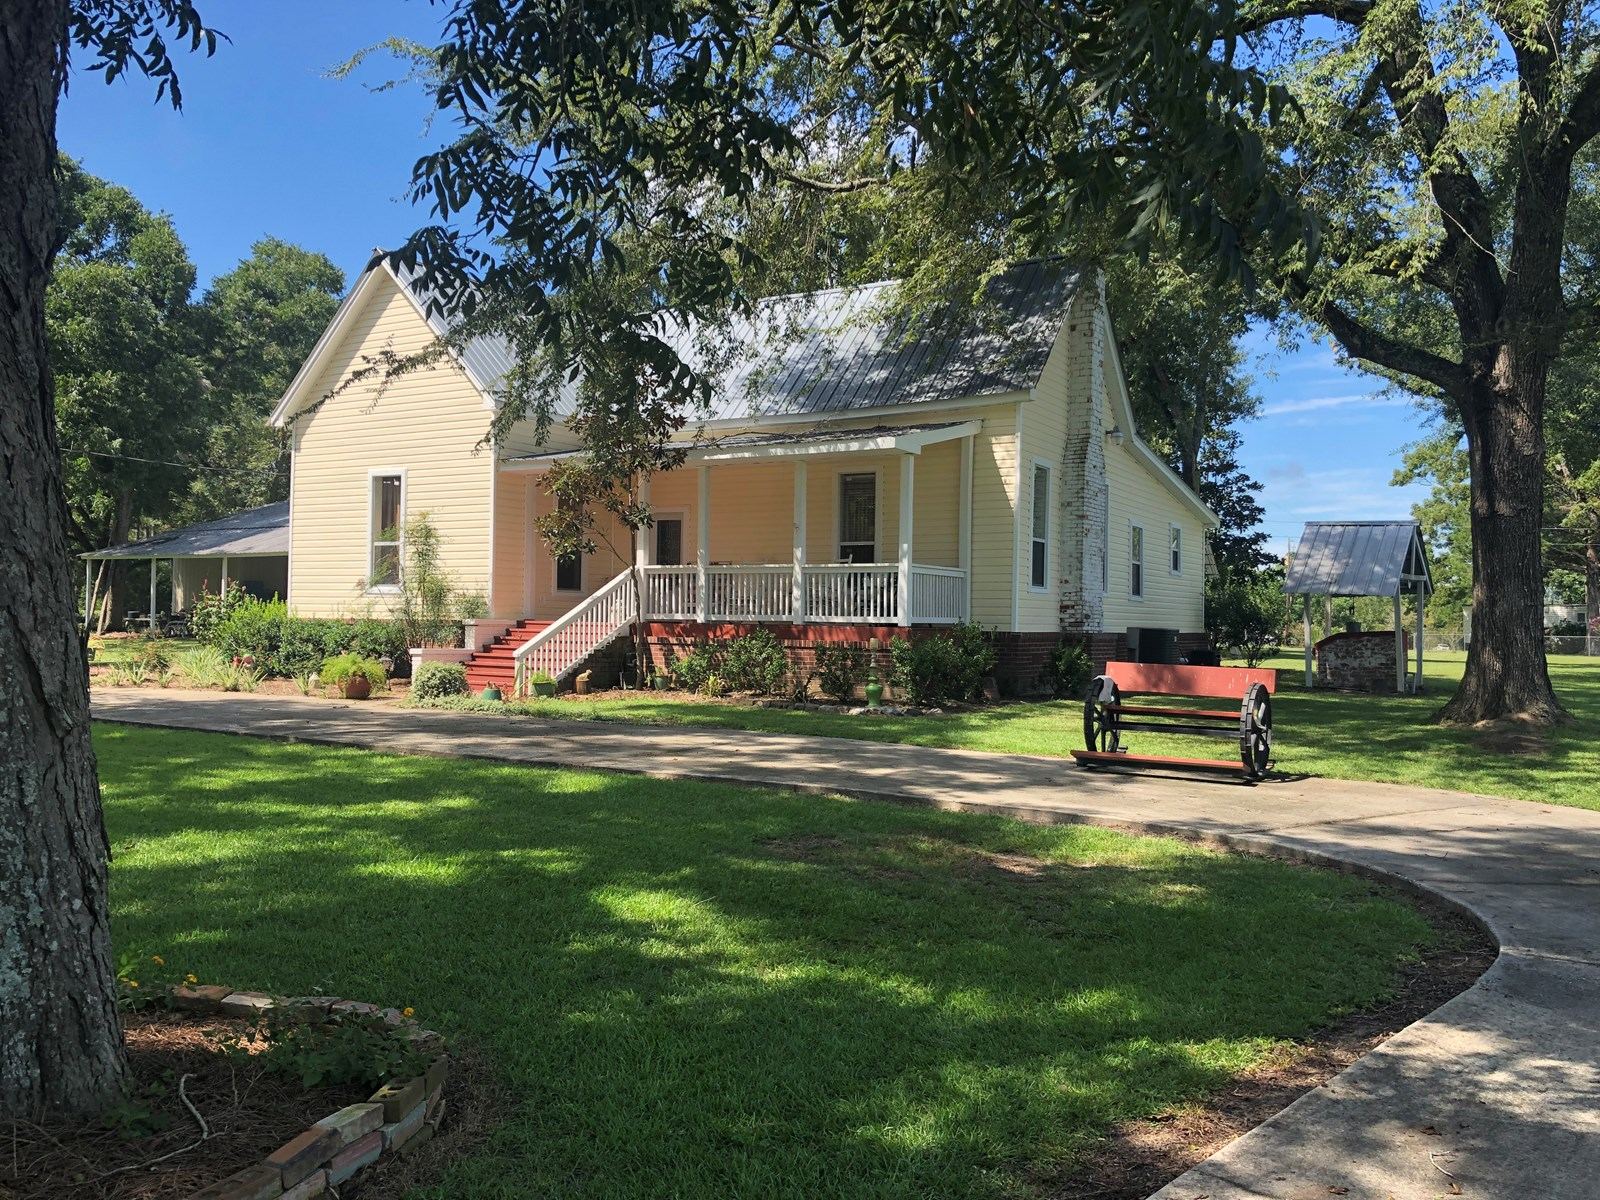 2B/2B HOME ON 1 ACRE FOR SALE SLOCOMB, ALABAMA